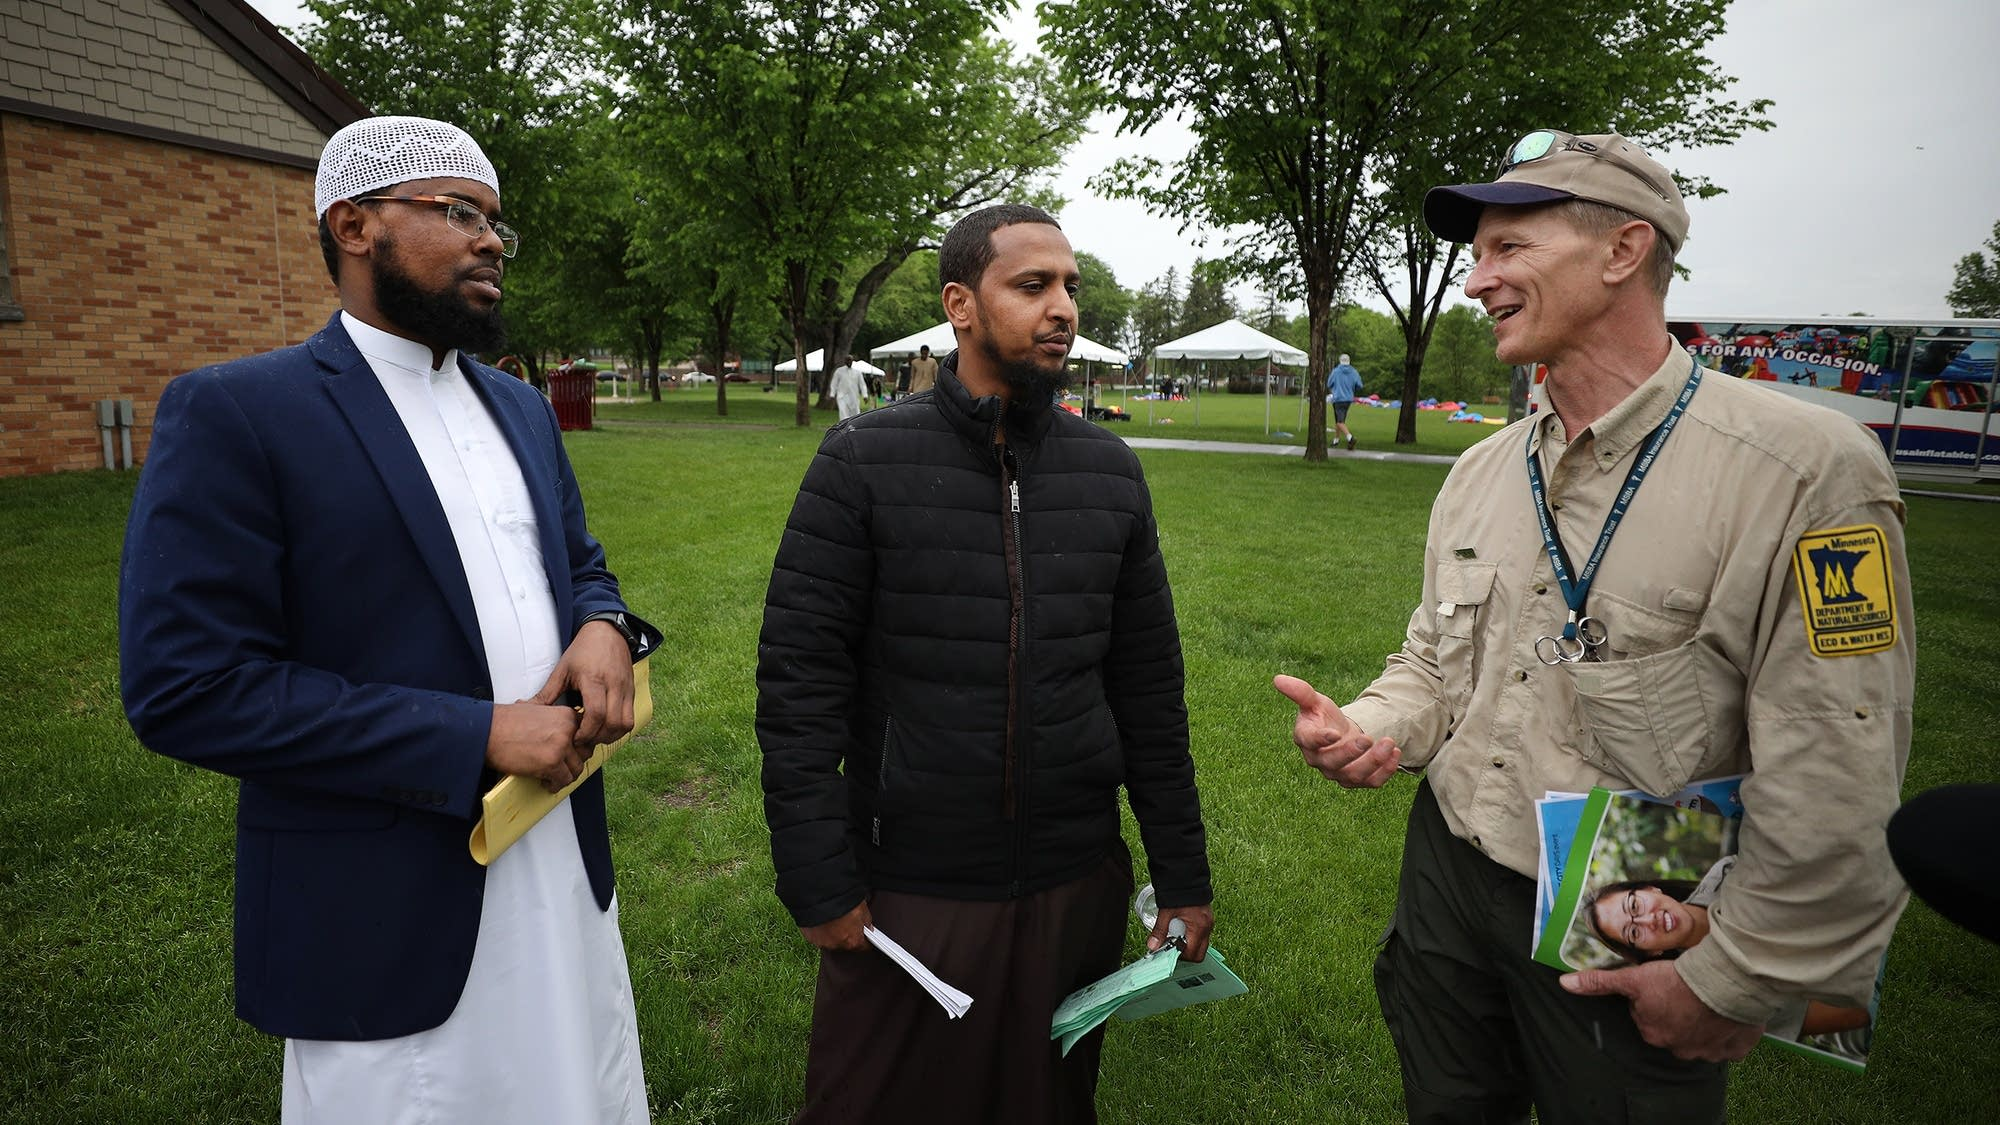 Ahmed Hassan and Mohayadin Mohamed talk with Mark Hauck.